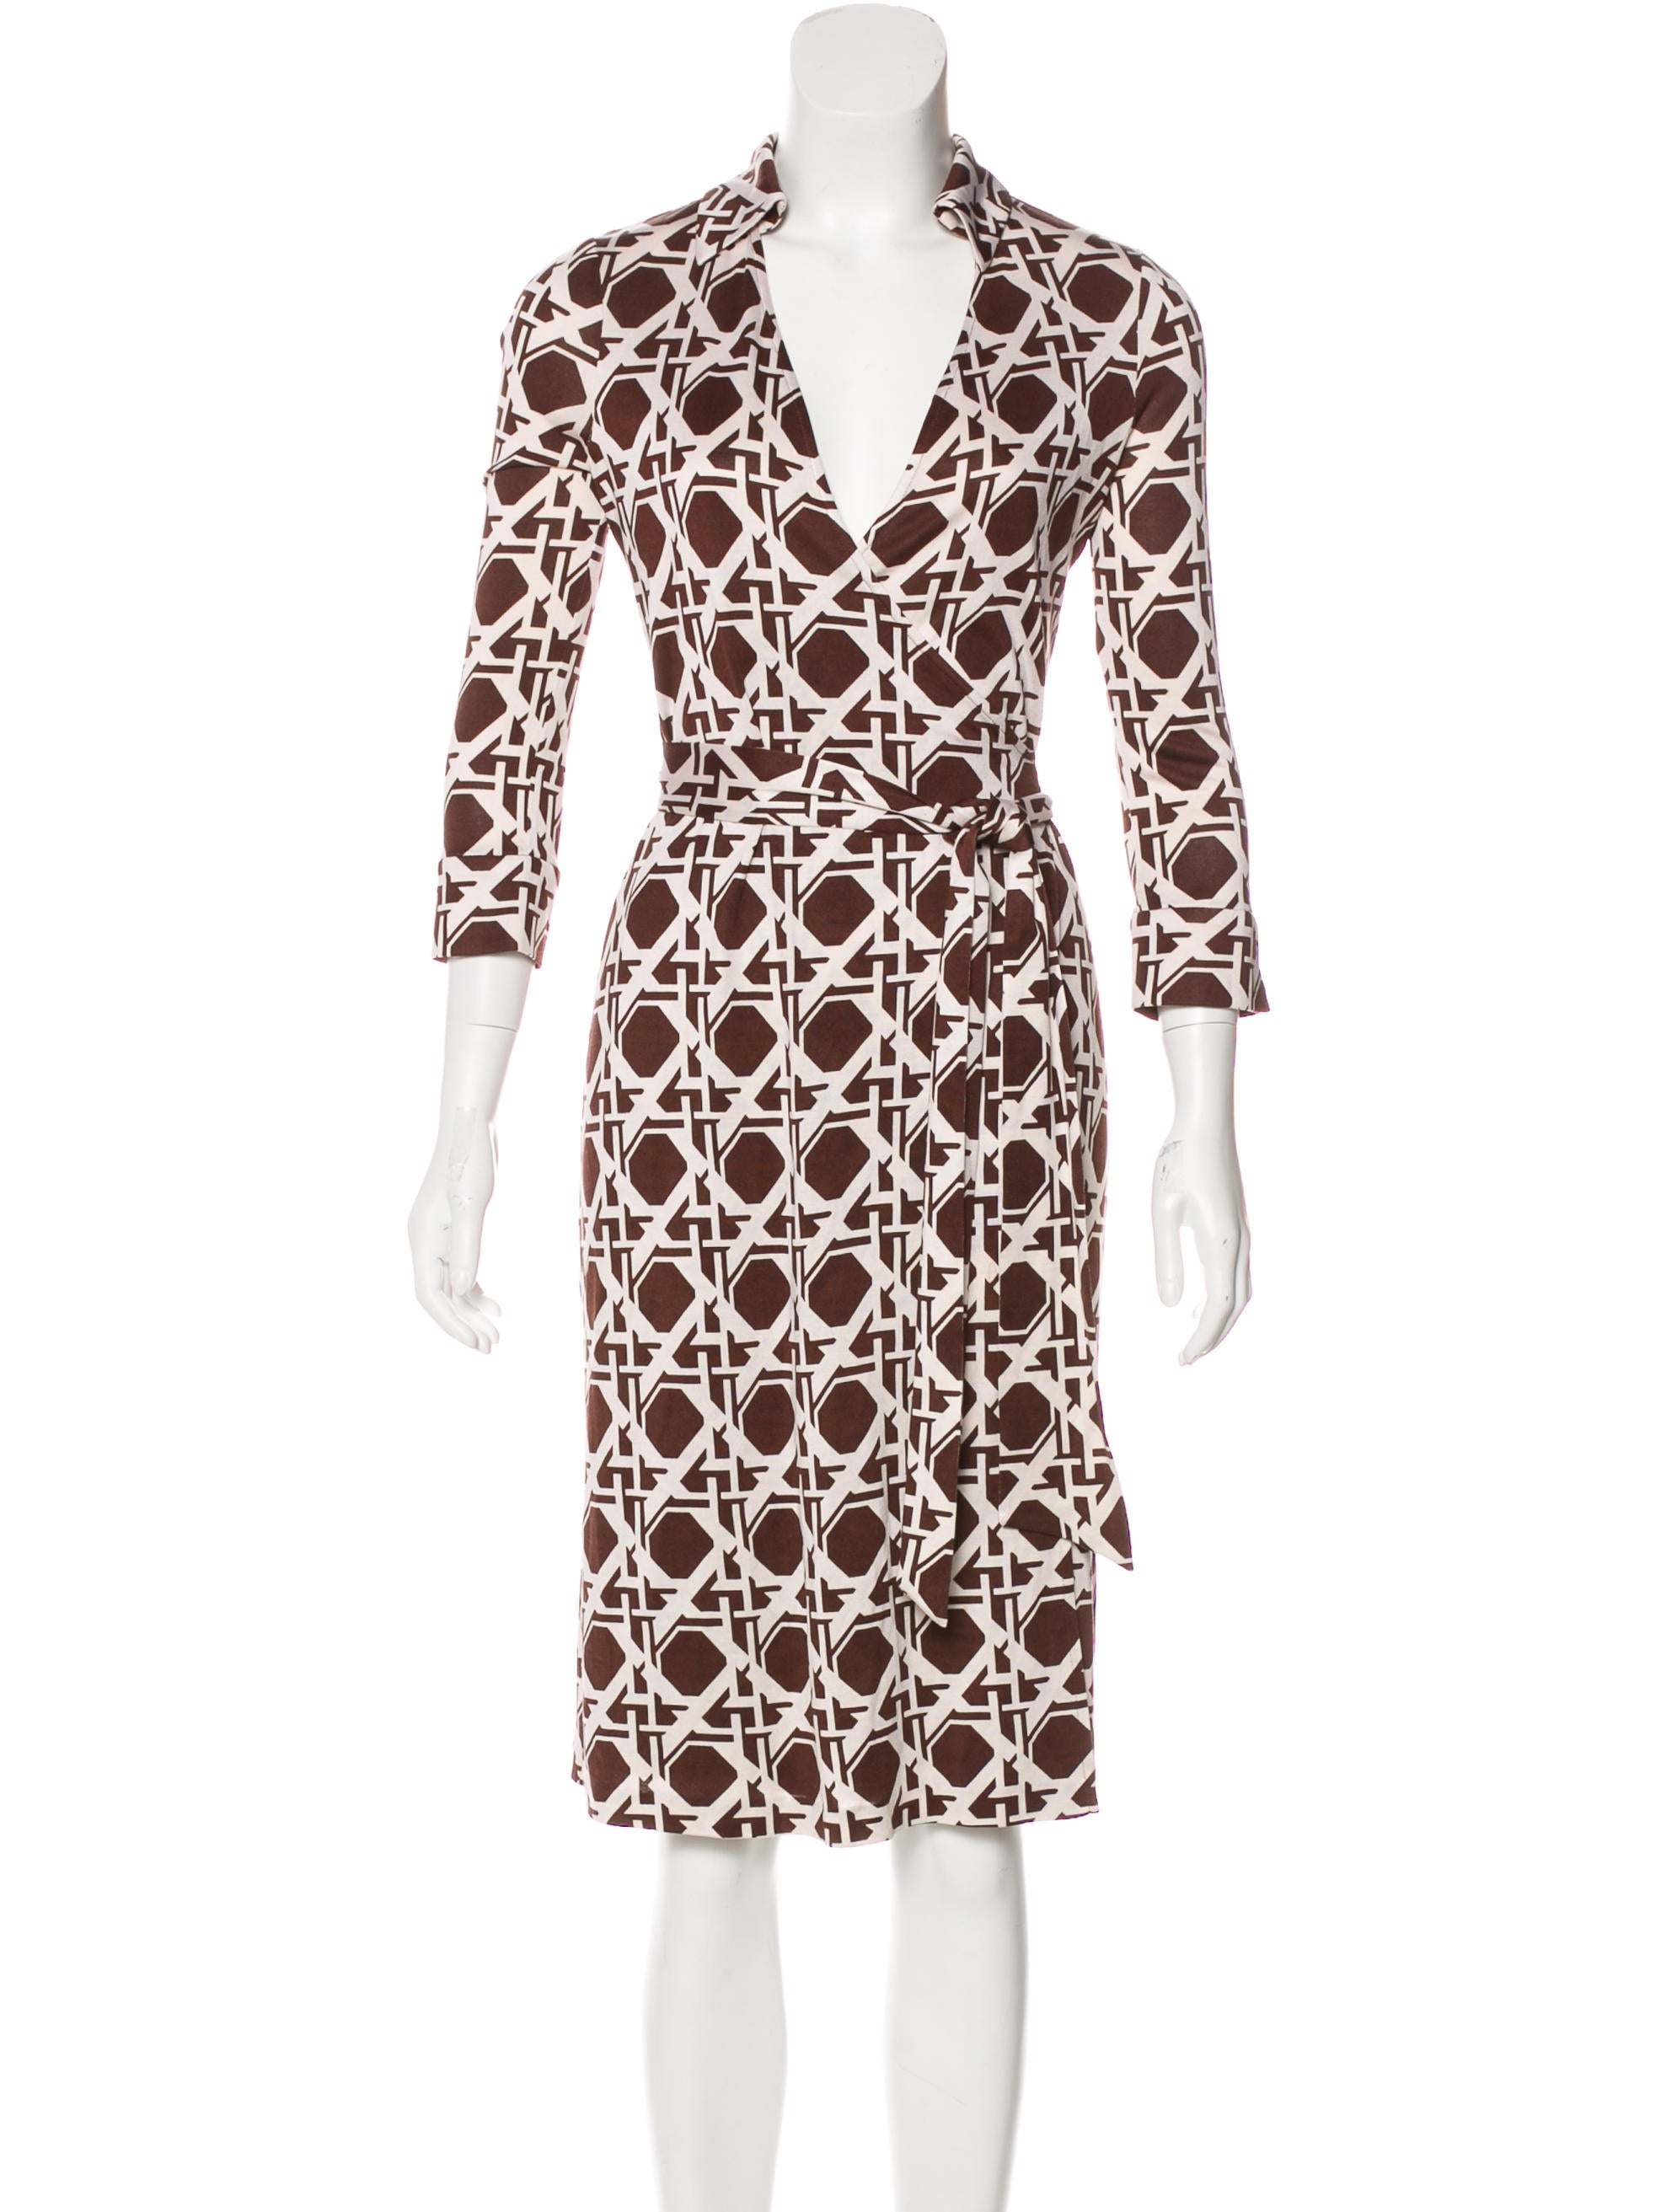 Diane von furstenberg justin silk dress clothing for Diane von furstenberg clothes